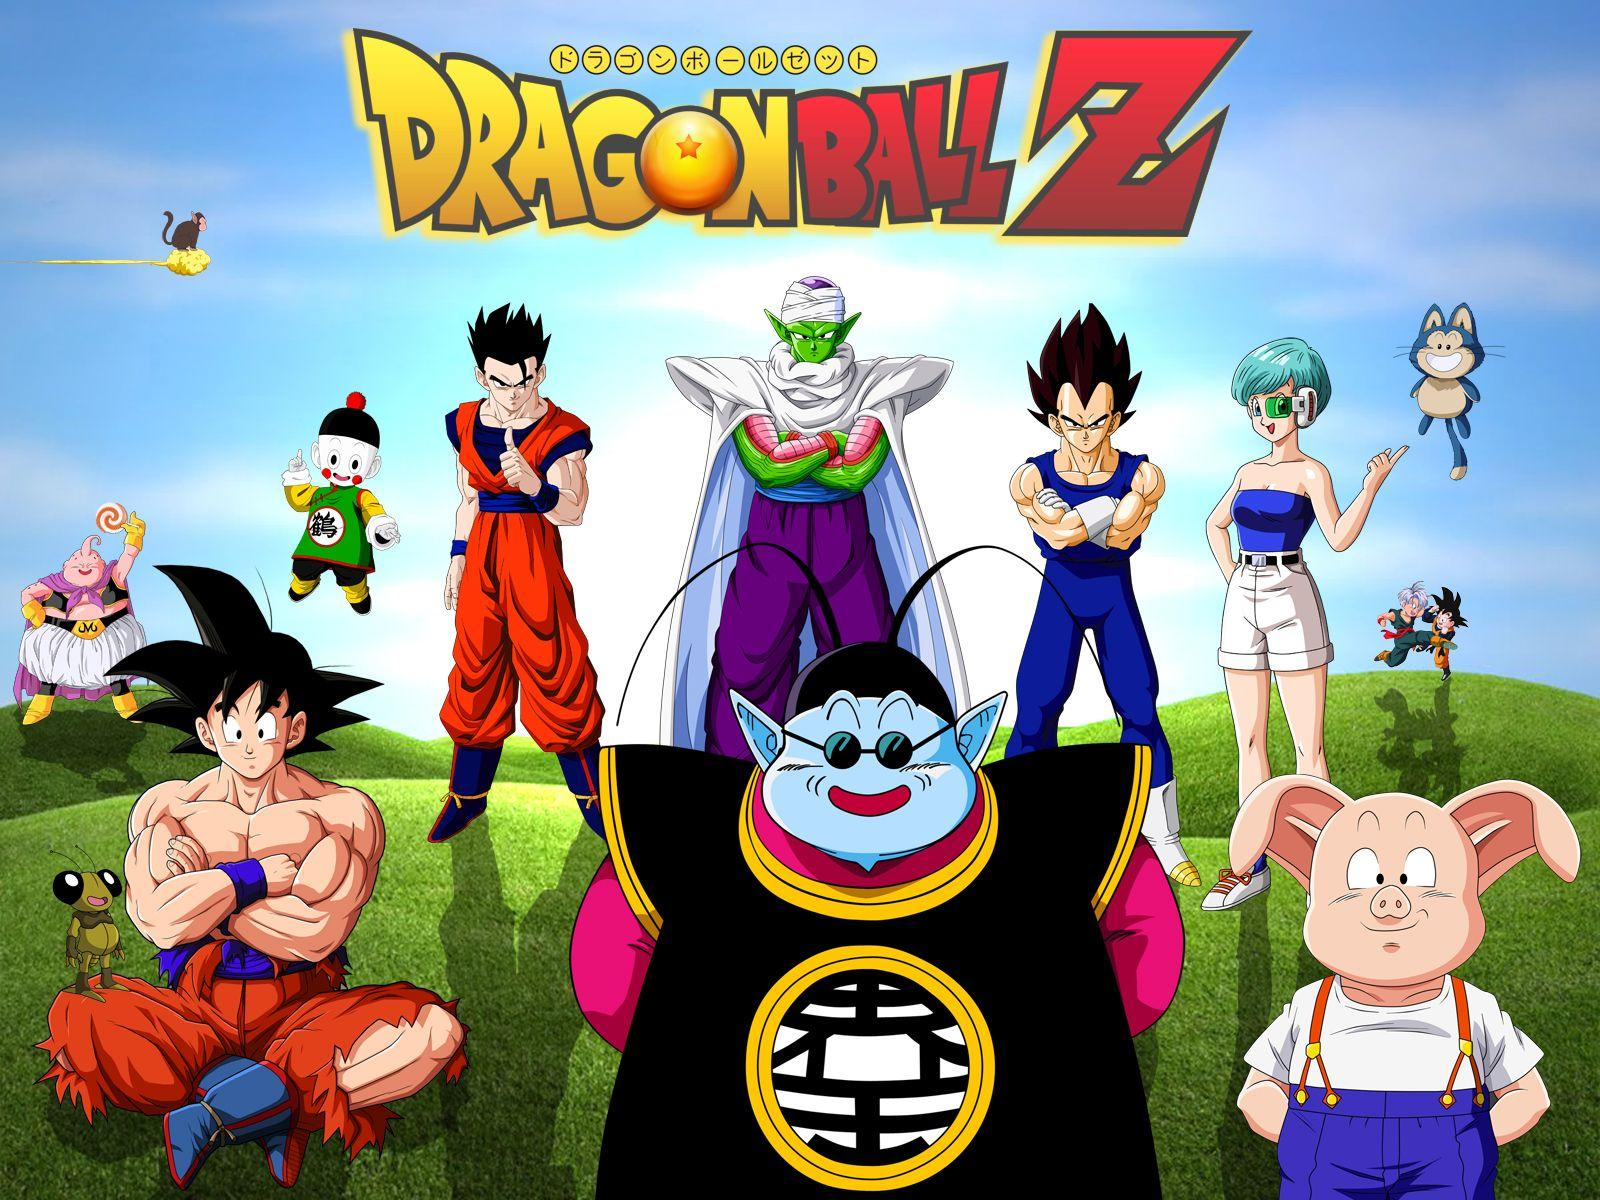 Dragon Ball Z All Characters Wallpapers Free • dodskypict